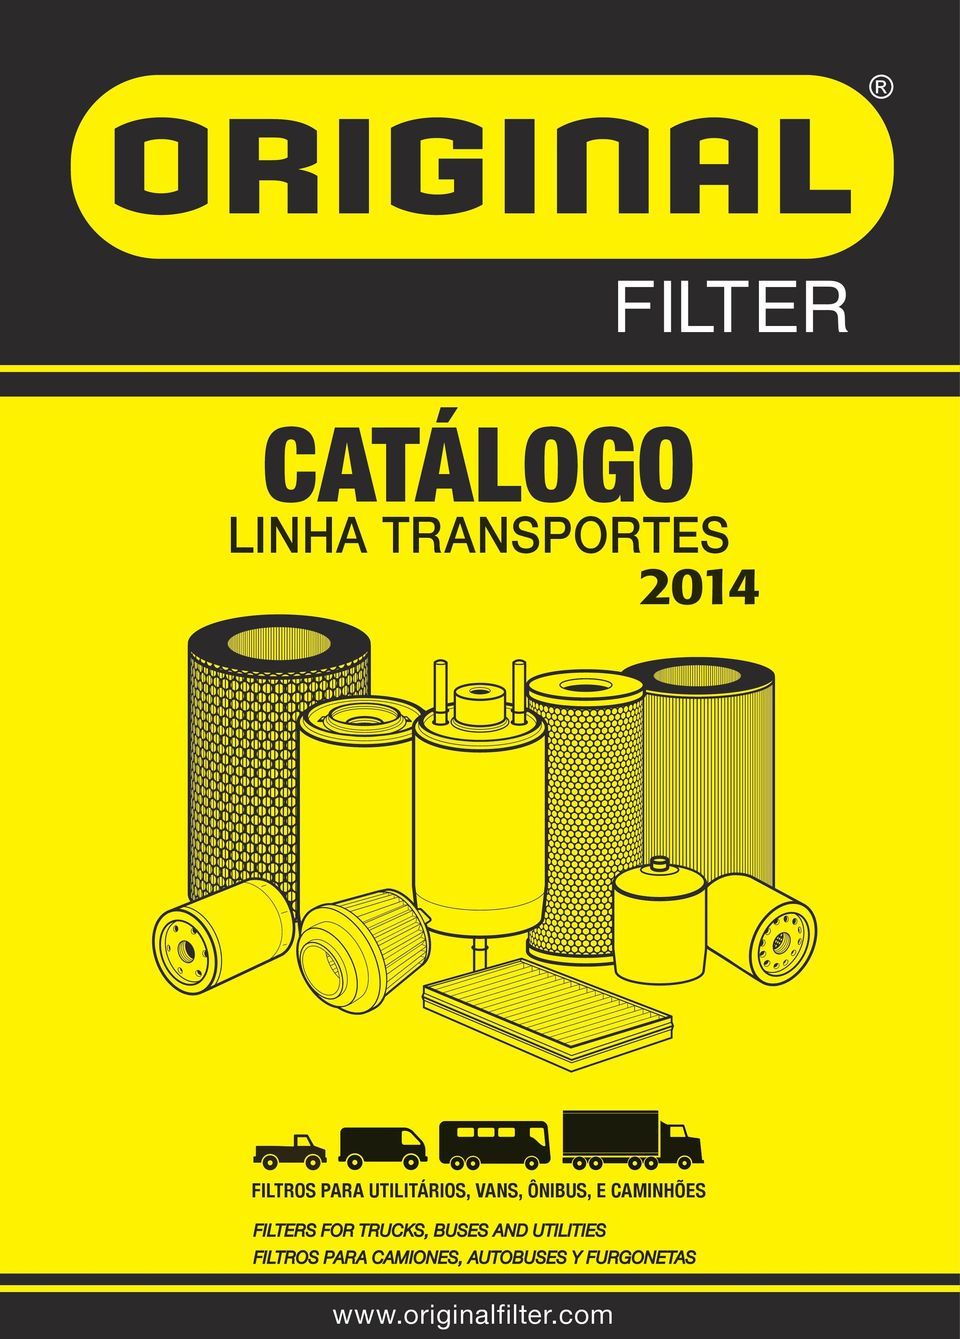 FILTERS FOR TRUCKS, BUSES AND UTILITIES FILTROS PARA